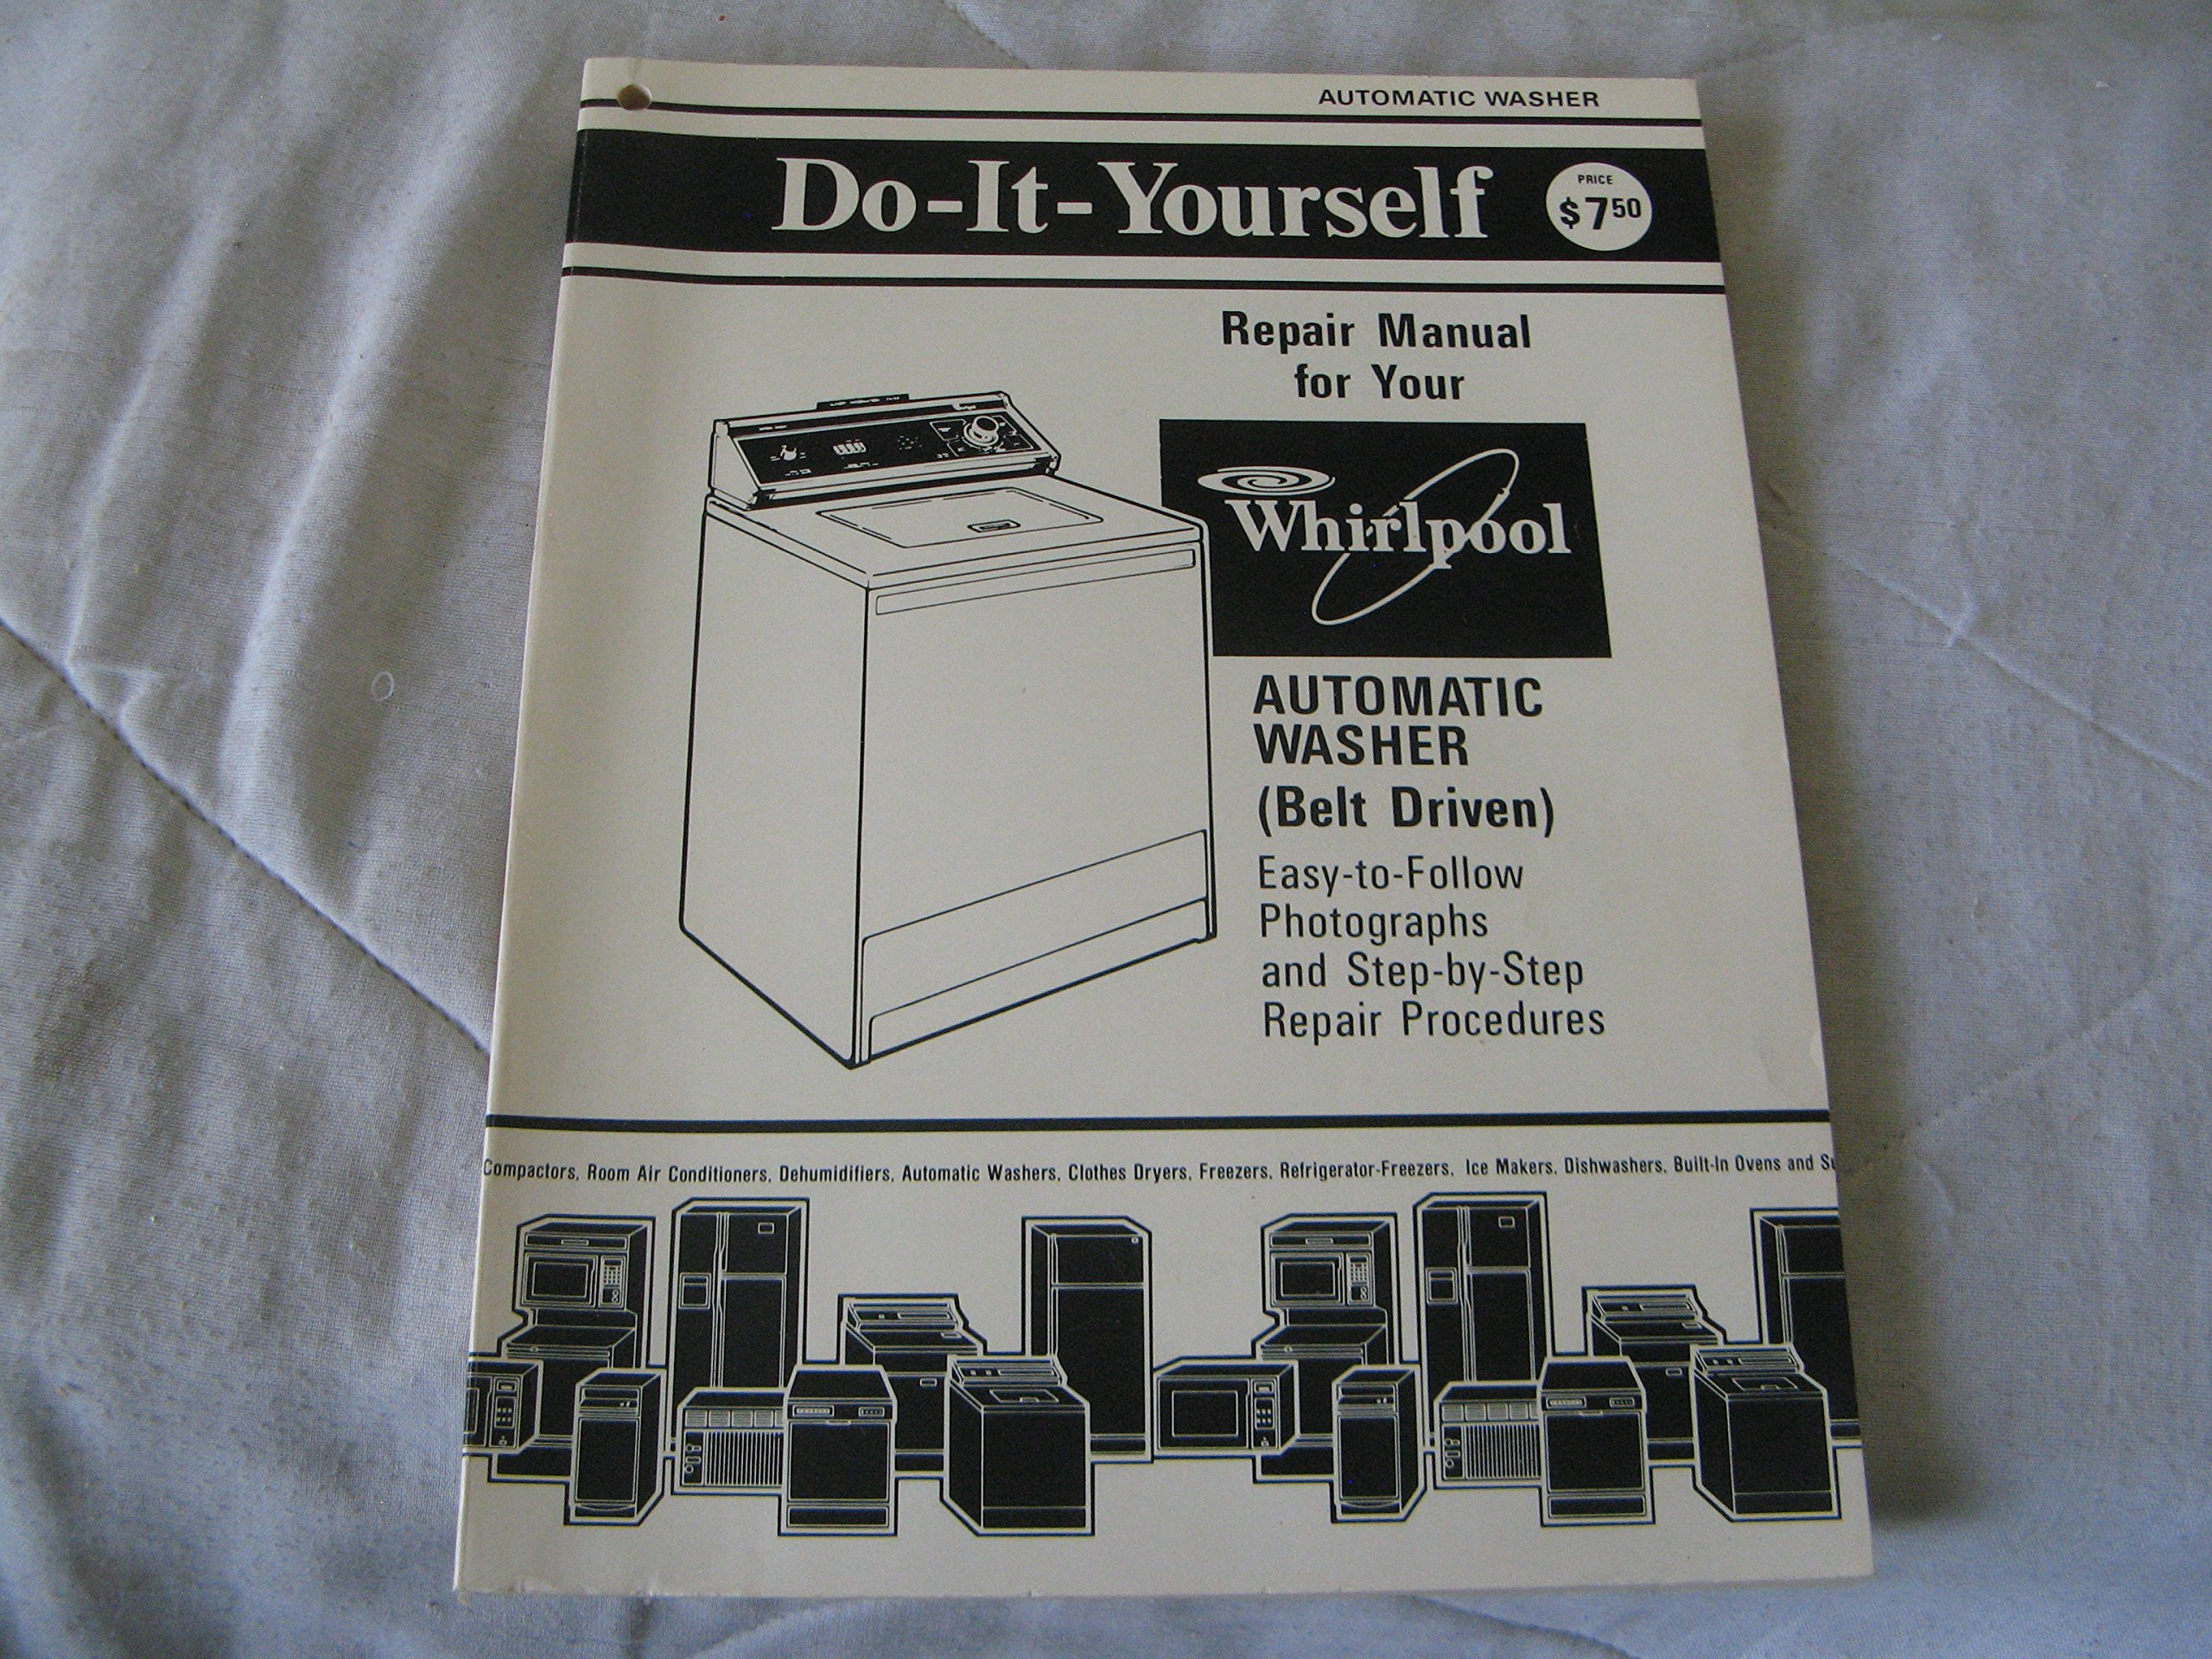 Do-it-yourself Repair Manual for Your Whirlpool Automatic Washer (Belt  Driven): Whirlpool Corperation: Amazon.com: Books